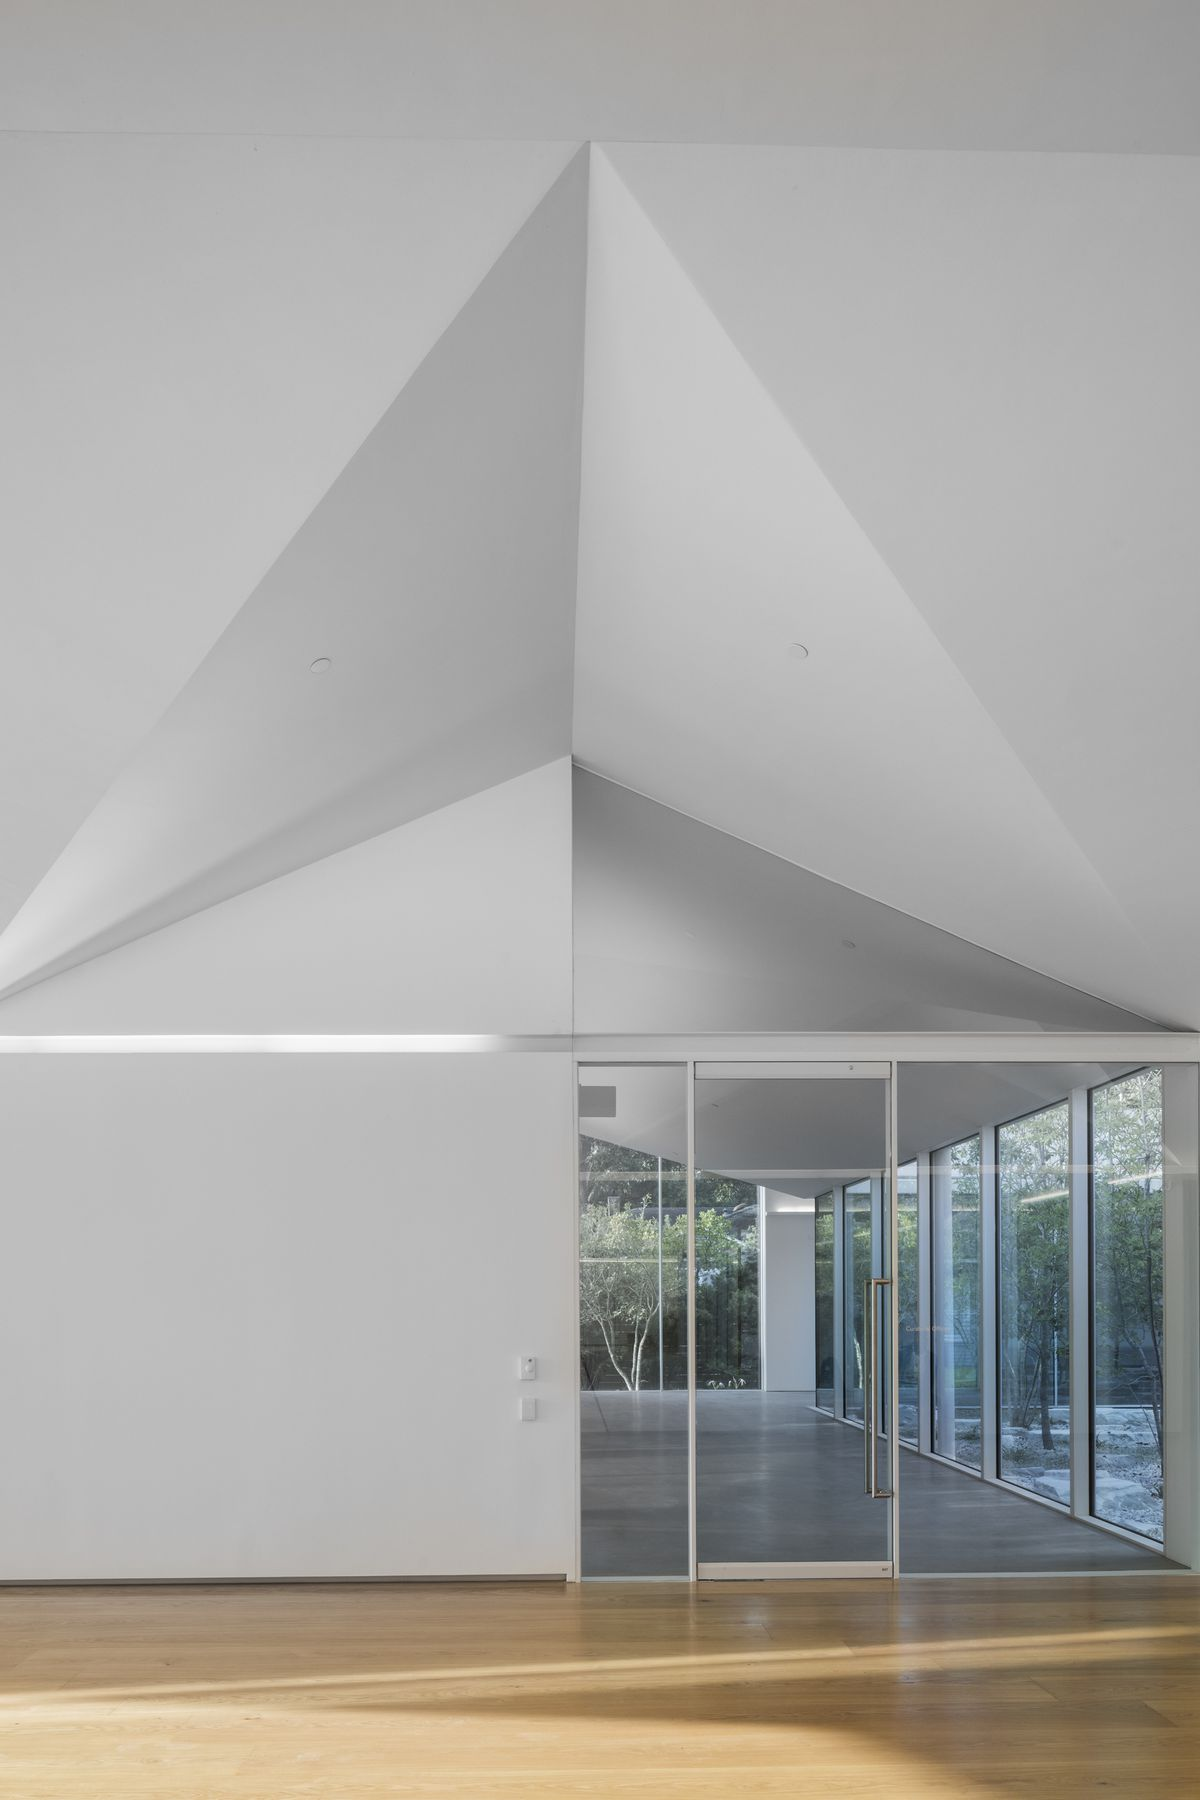 Menil Drawing Institute By Johnston Marklee Opens In